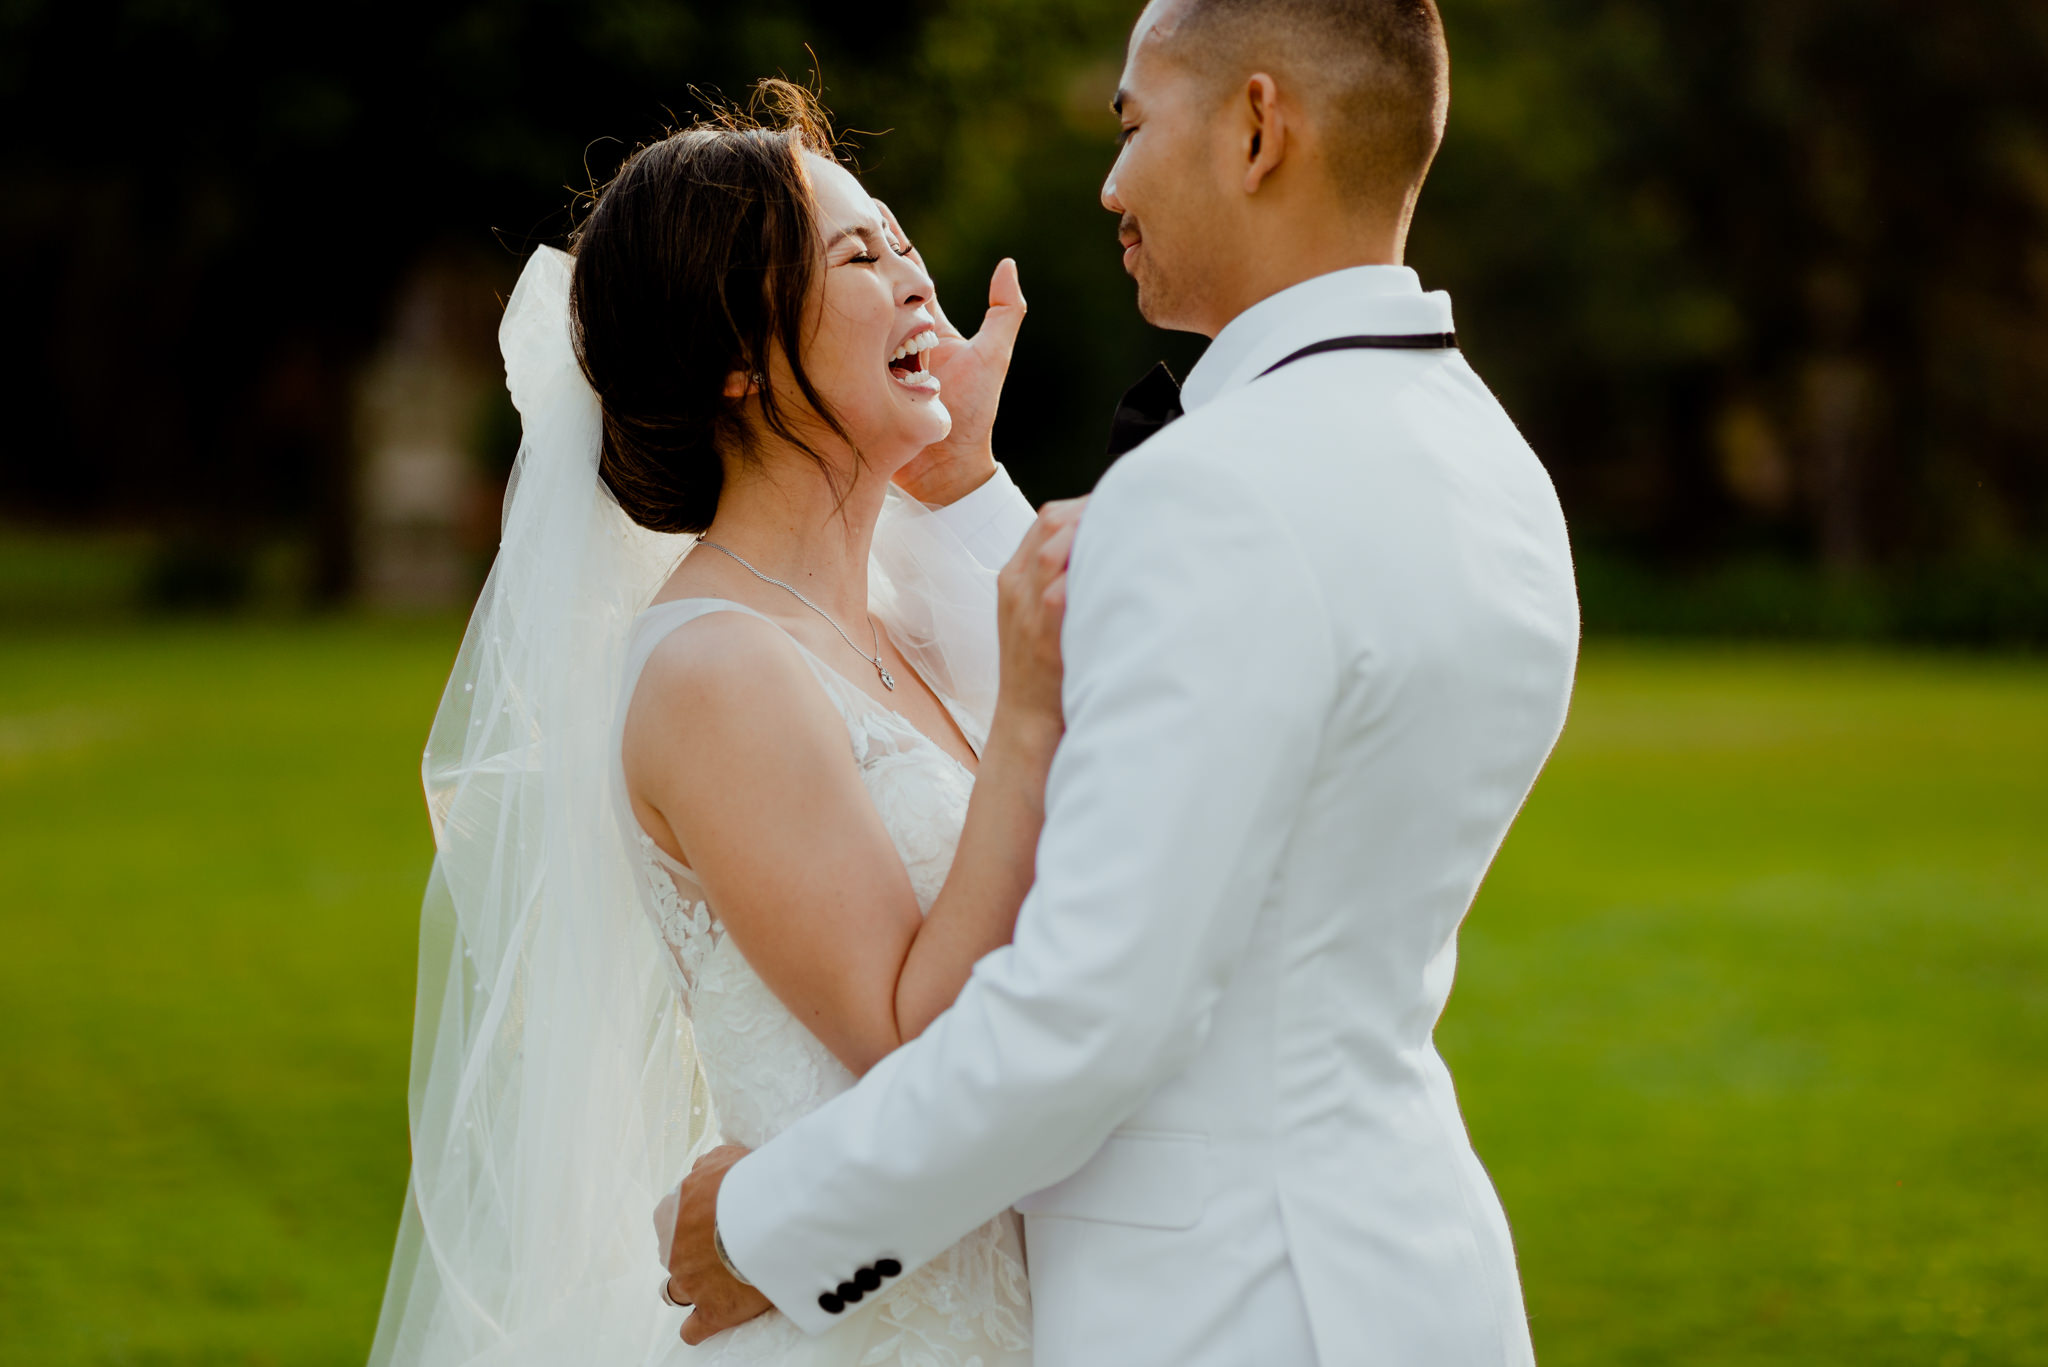 An Asian bride laughs as her groom places his hand on her face